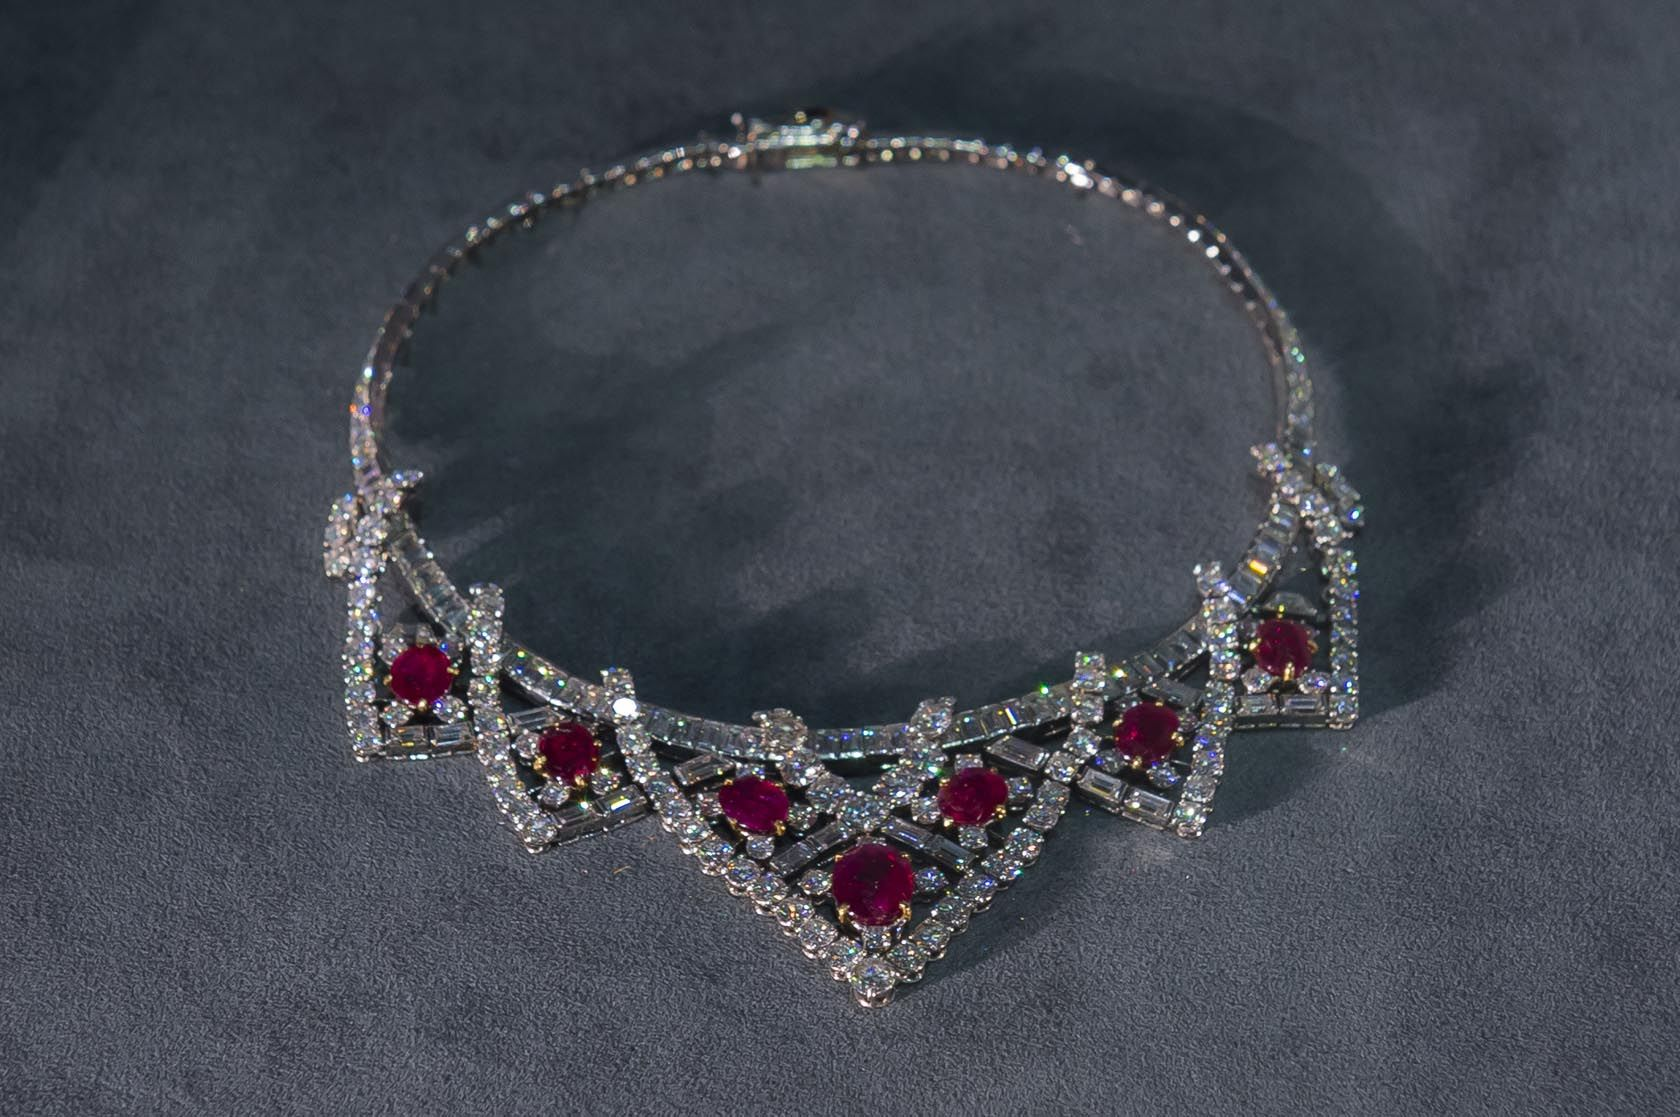 Cartier Ruby and Diamond Tiara Necklace (off frame), France (1953; made by Cartier; rubies, diamonds, platinum, gold).